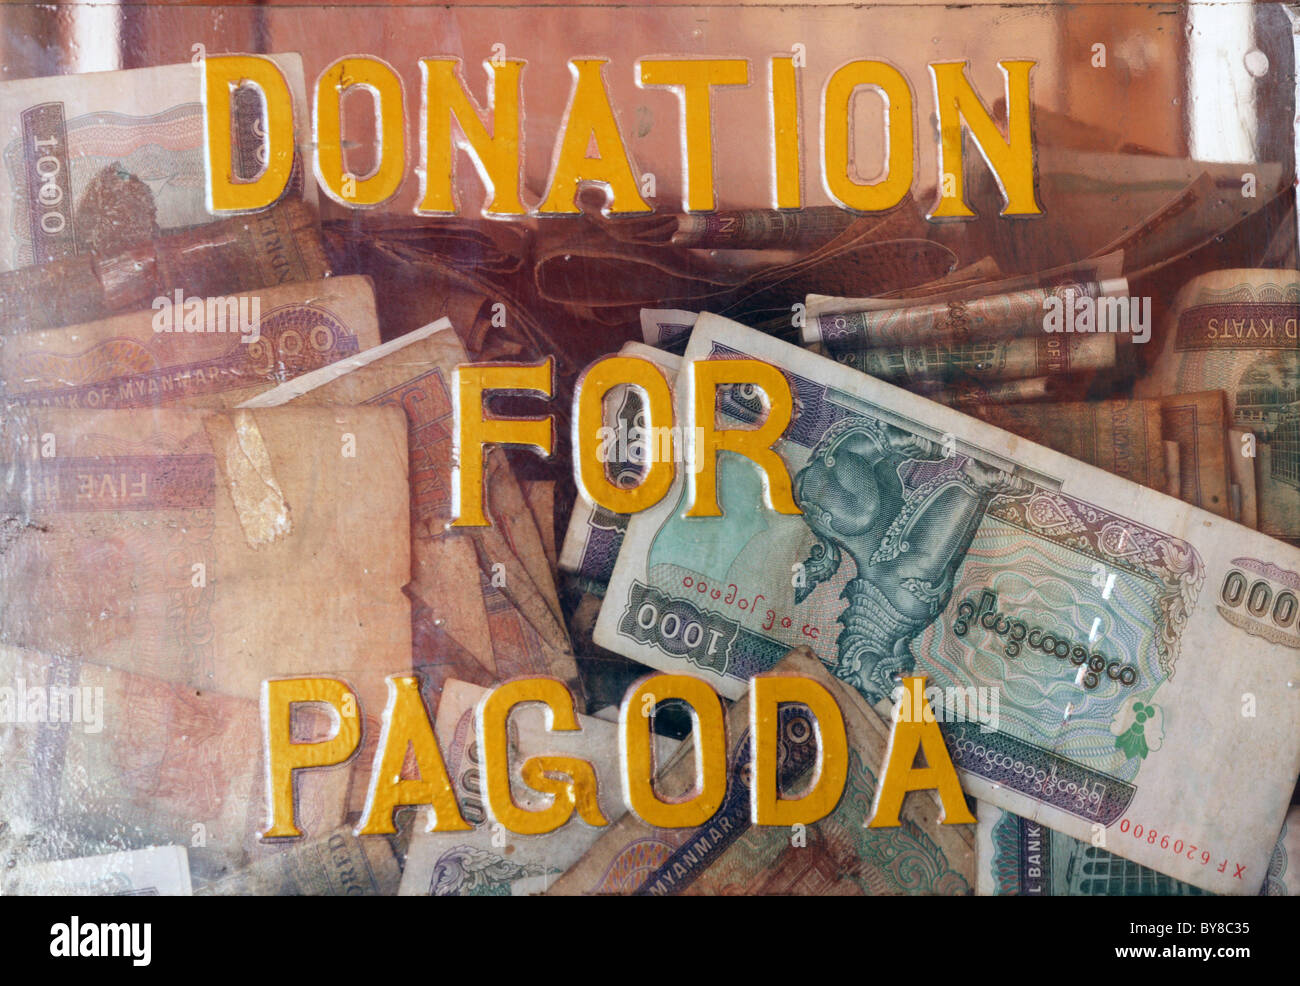 Burma,Birma,Myanmar, 20100223, DONATION FOR PAGODA - Stock Image